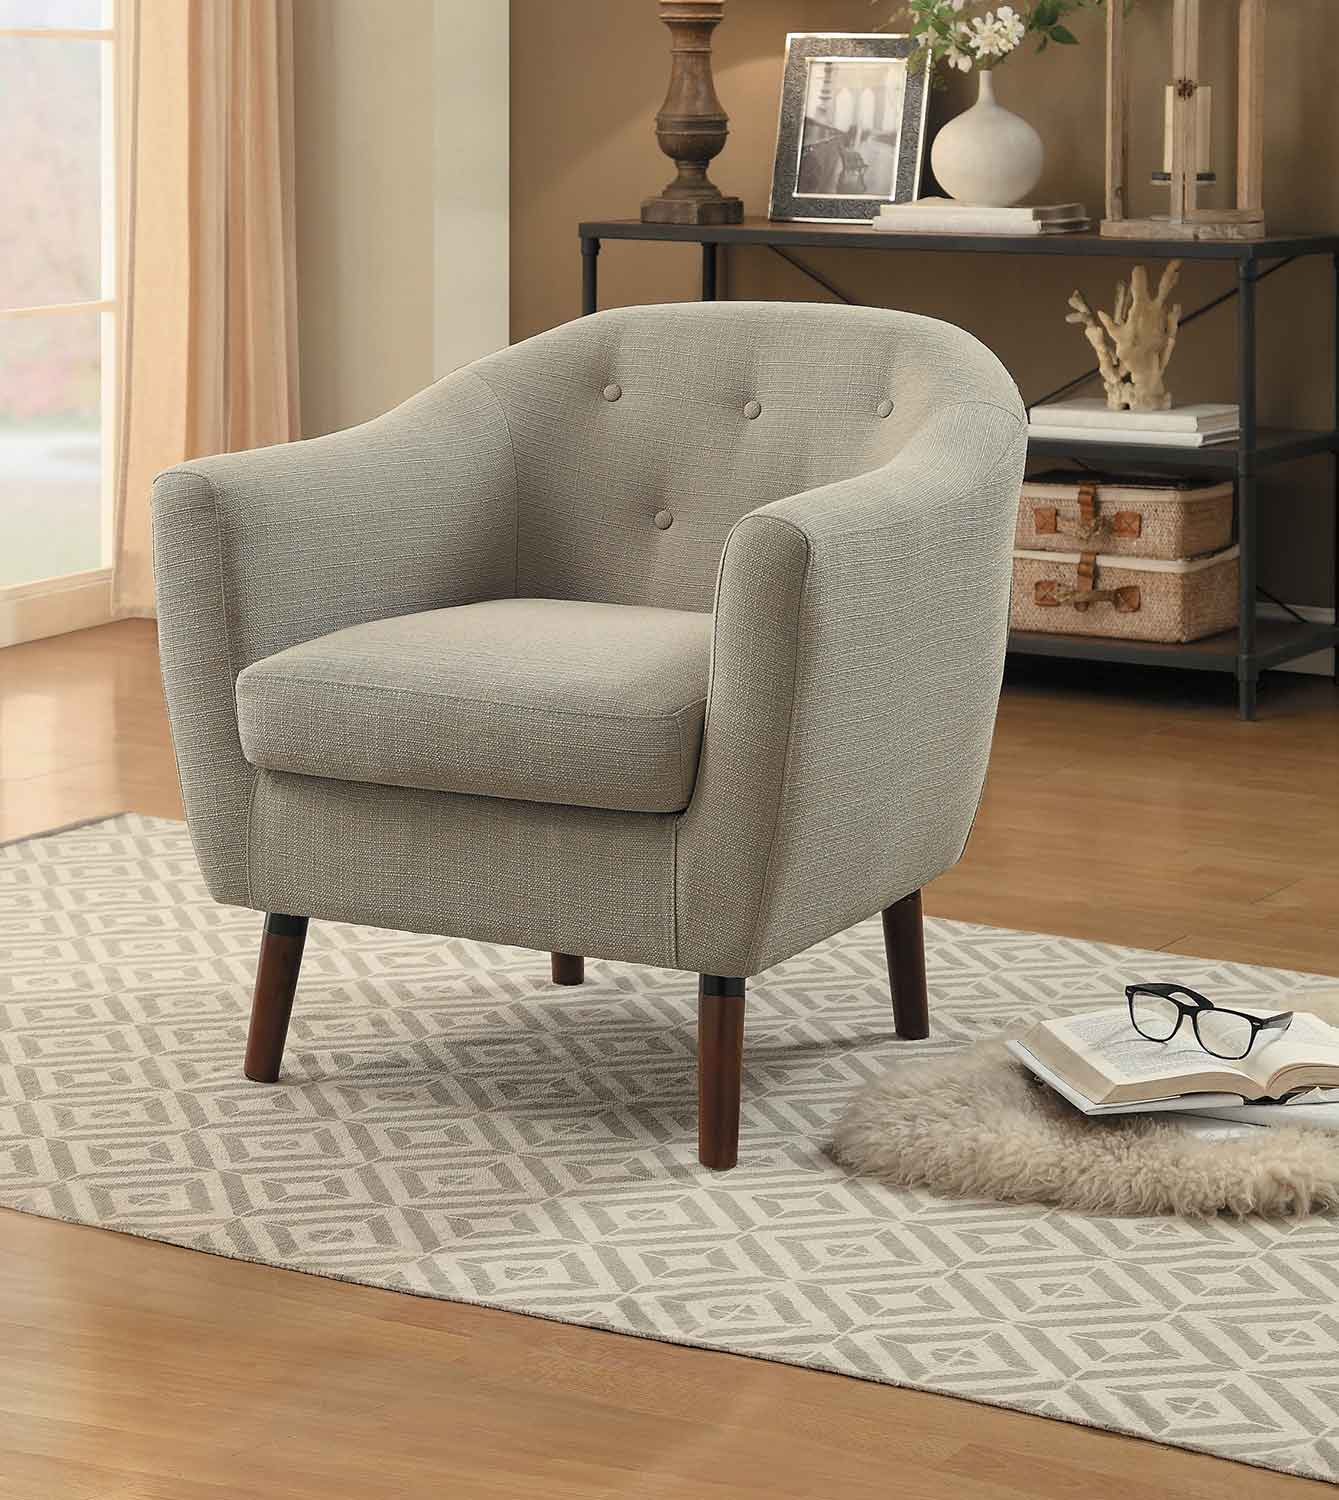 Homelegance Lucille Accent Chair - Beige